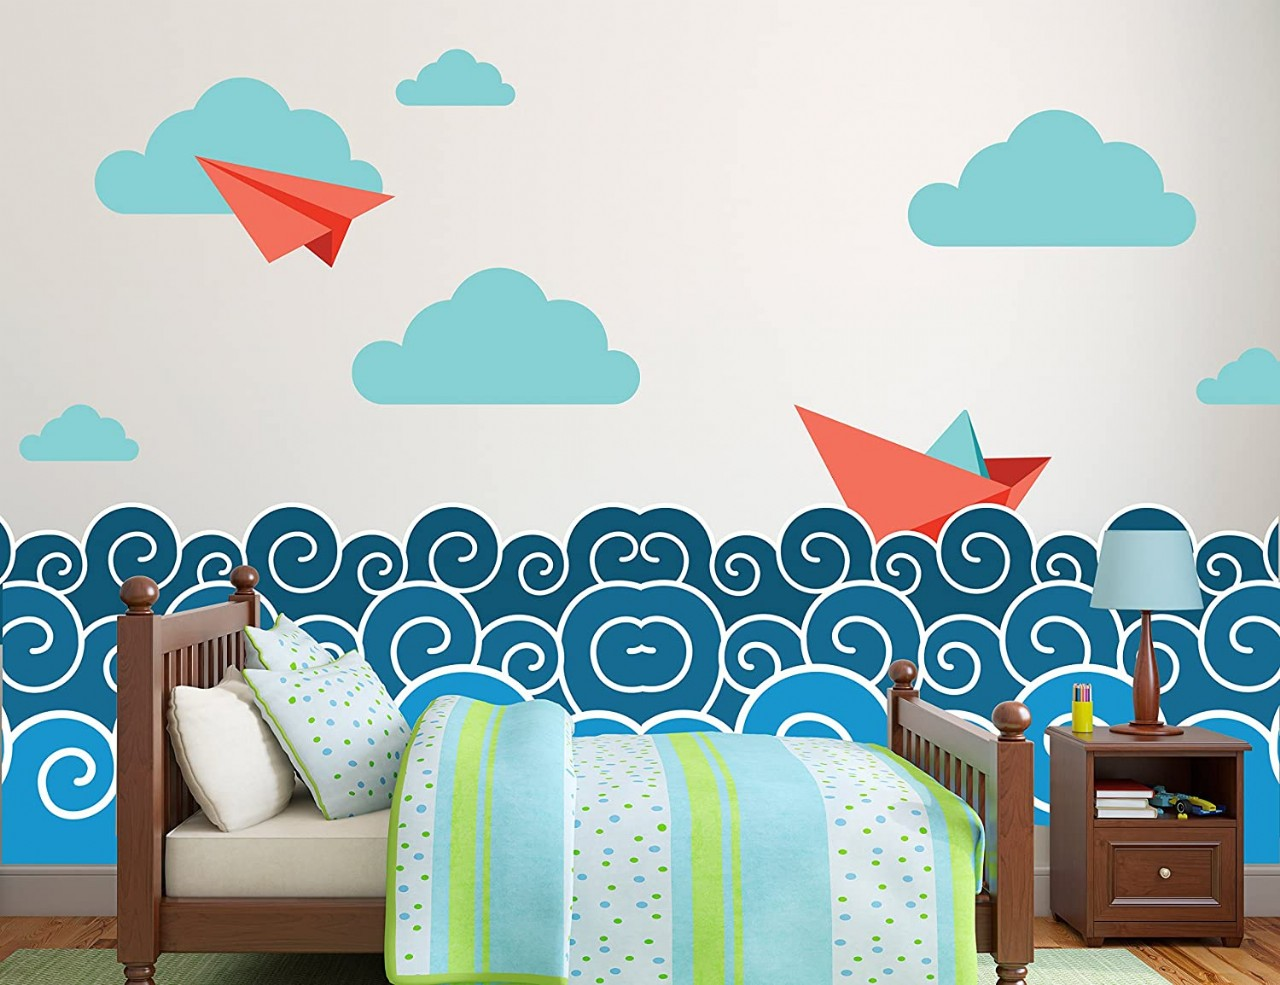 Paper Plane and Boat Theme Wall Decal - Kids Room Decor For Home Interior Decoration Car Laptop